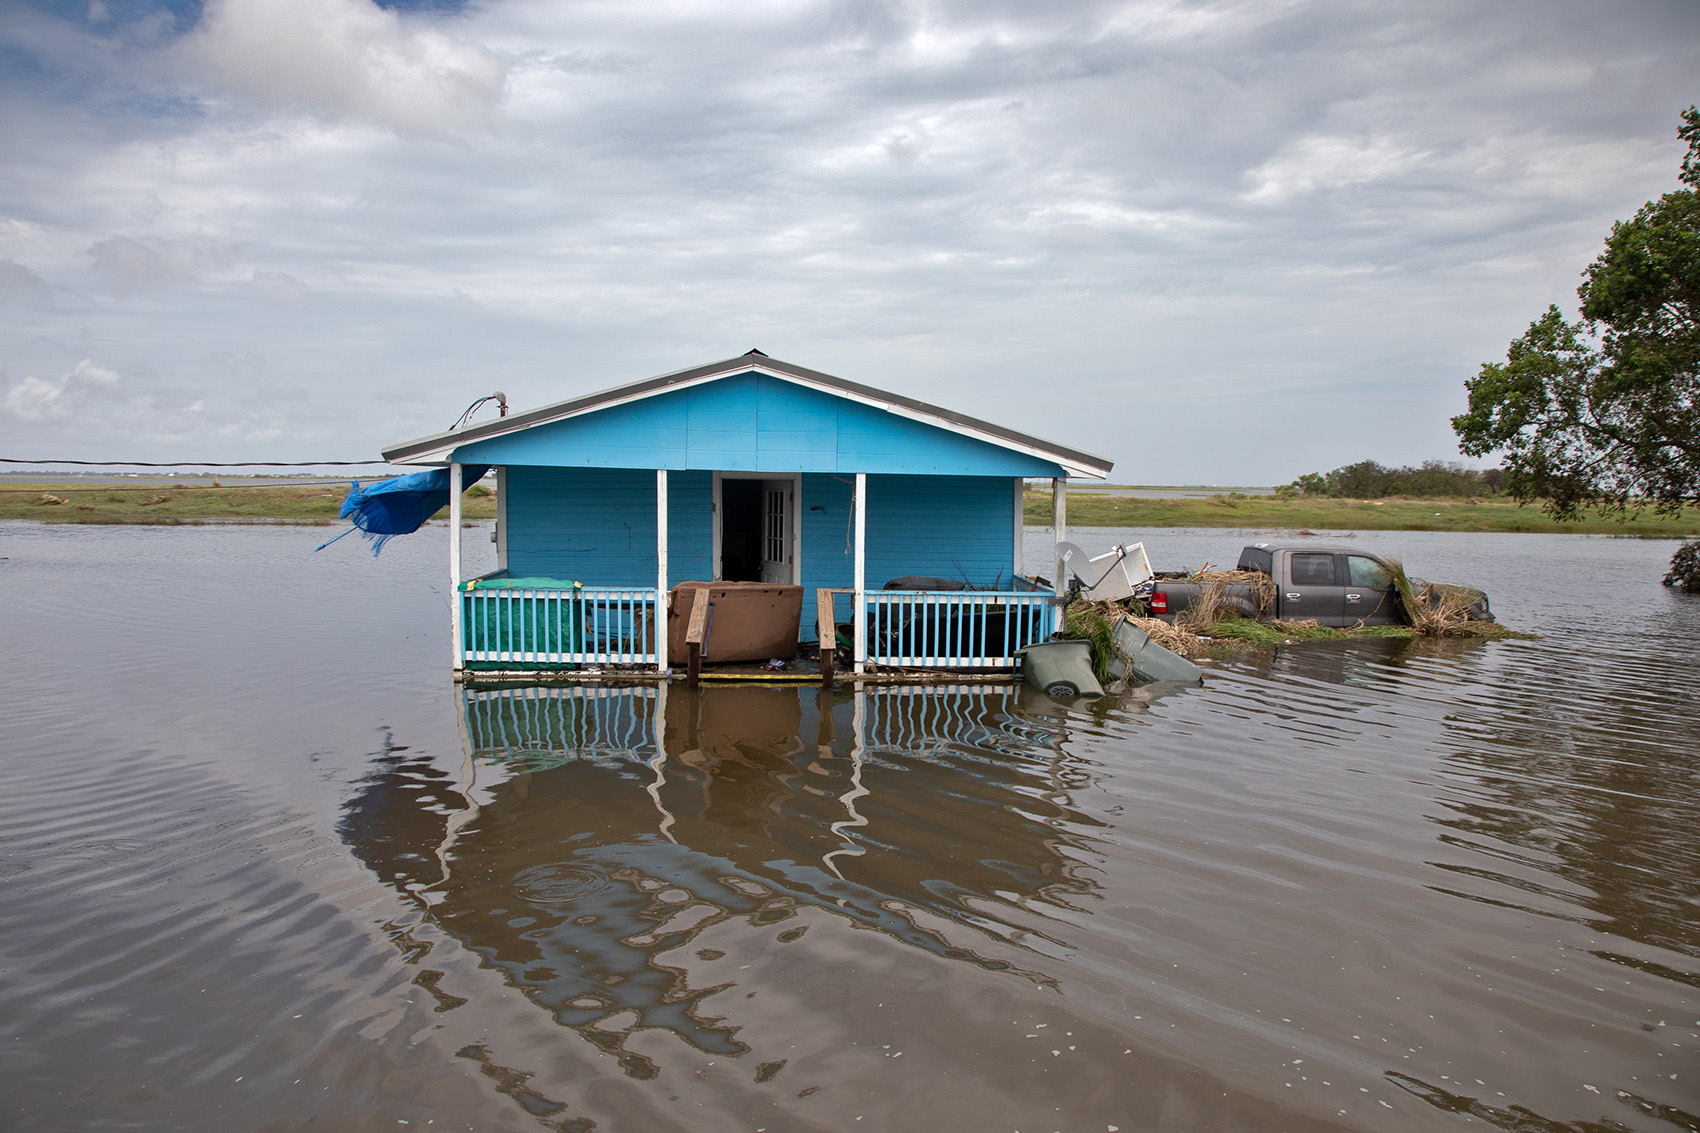 Floodwaters reach the porch of a home on Isle de Jean Charles. The island was not under mandatory evacuation, the surge came as a surprise to residents, though it's a common occurrence during storms.